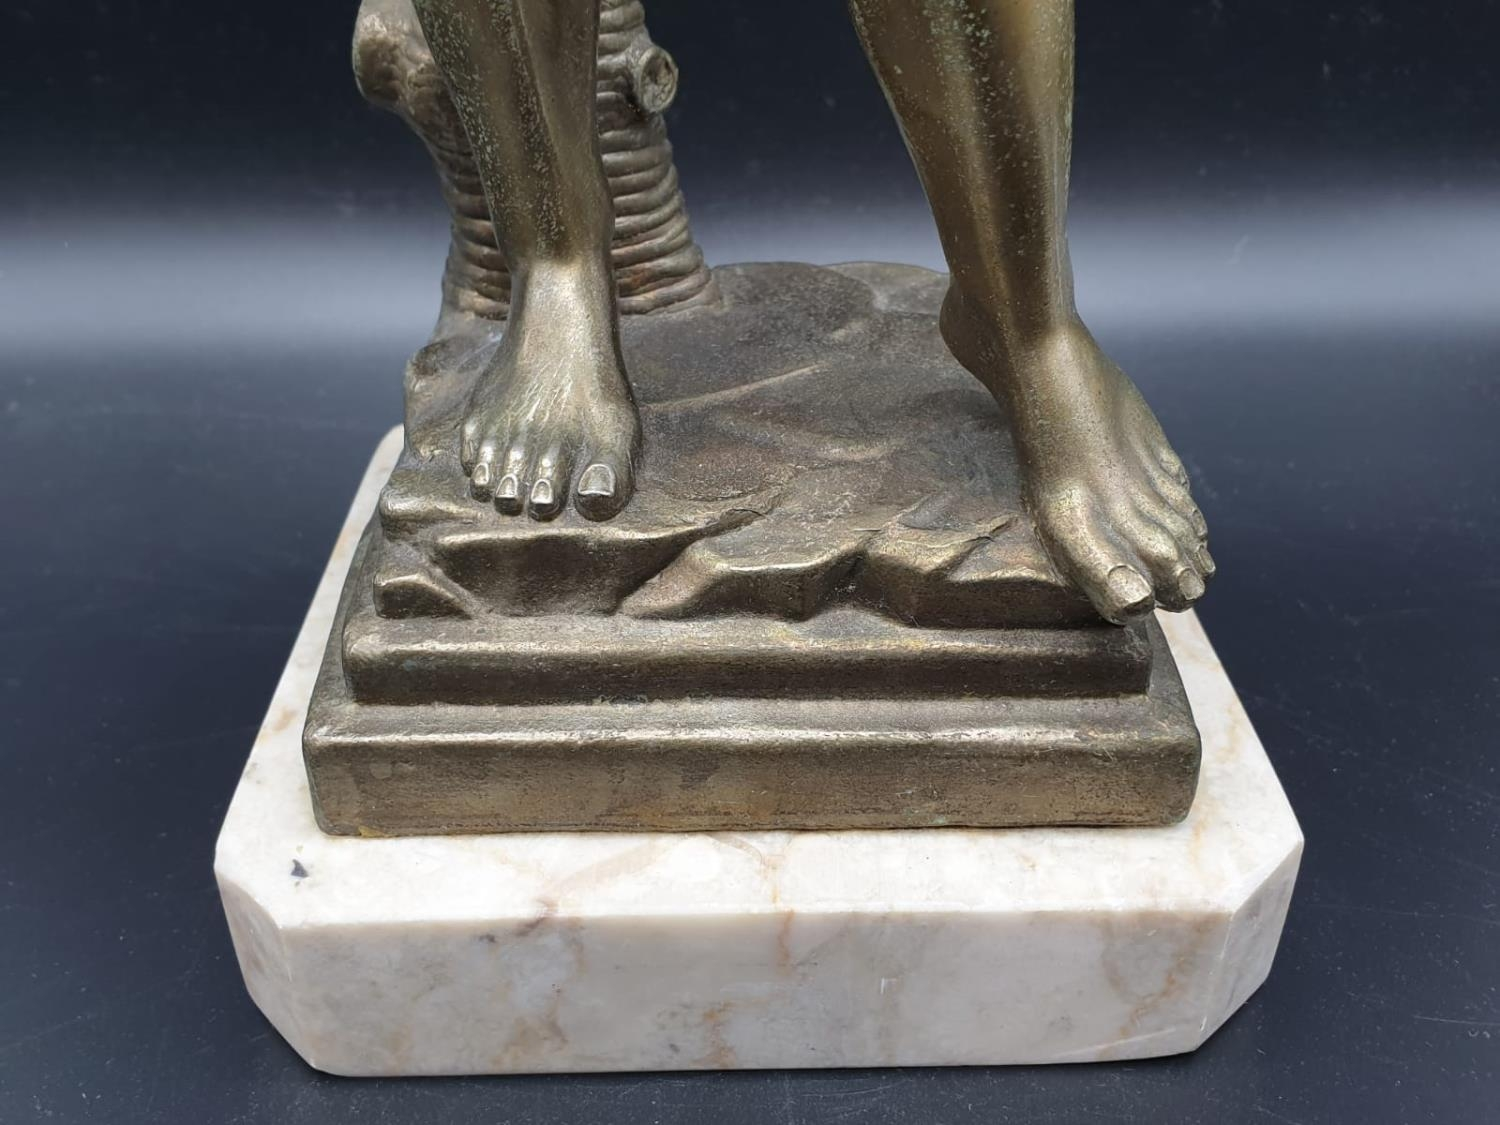 A Statue of Michelangelo's David in Brass on a Marble Base 40cms Tall 3.6kg - Image 9 of 9